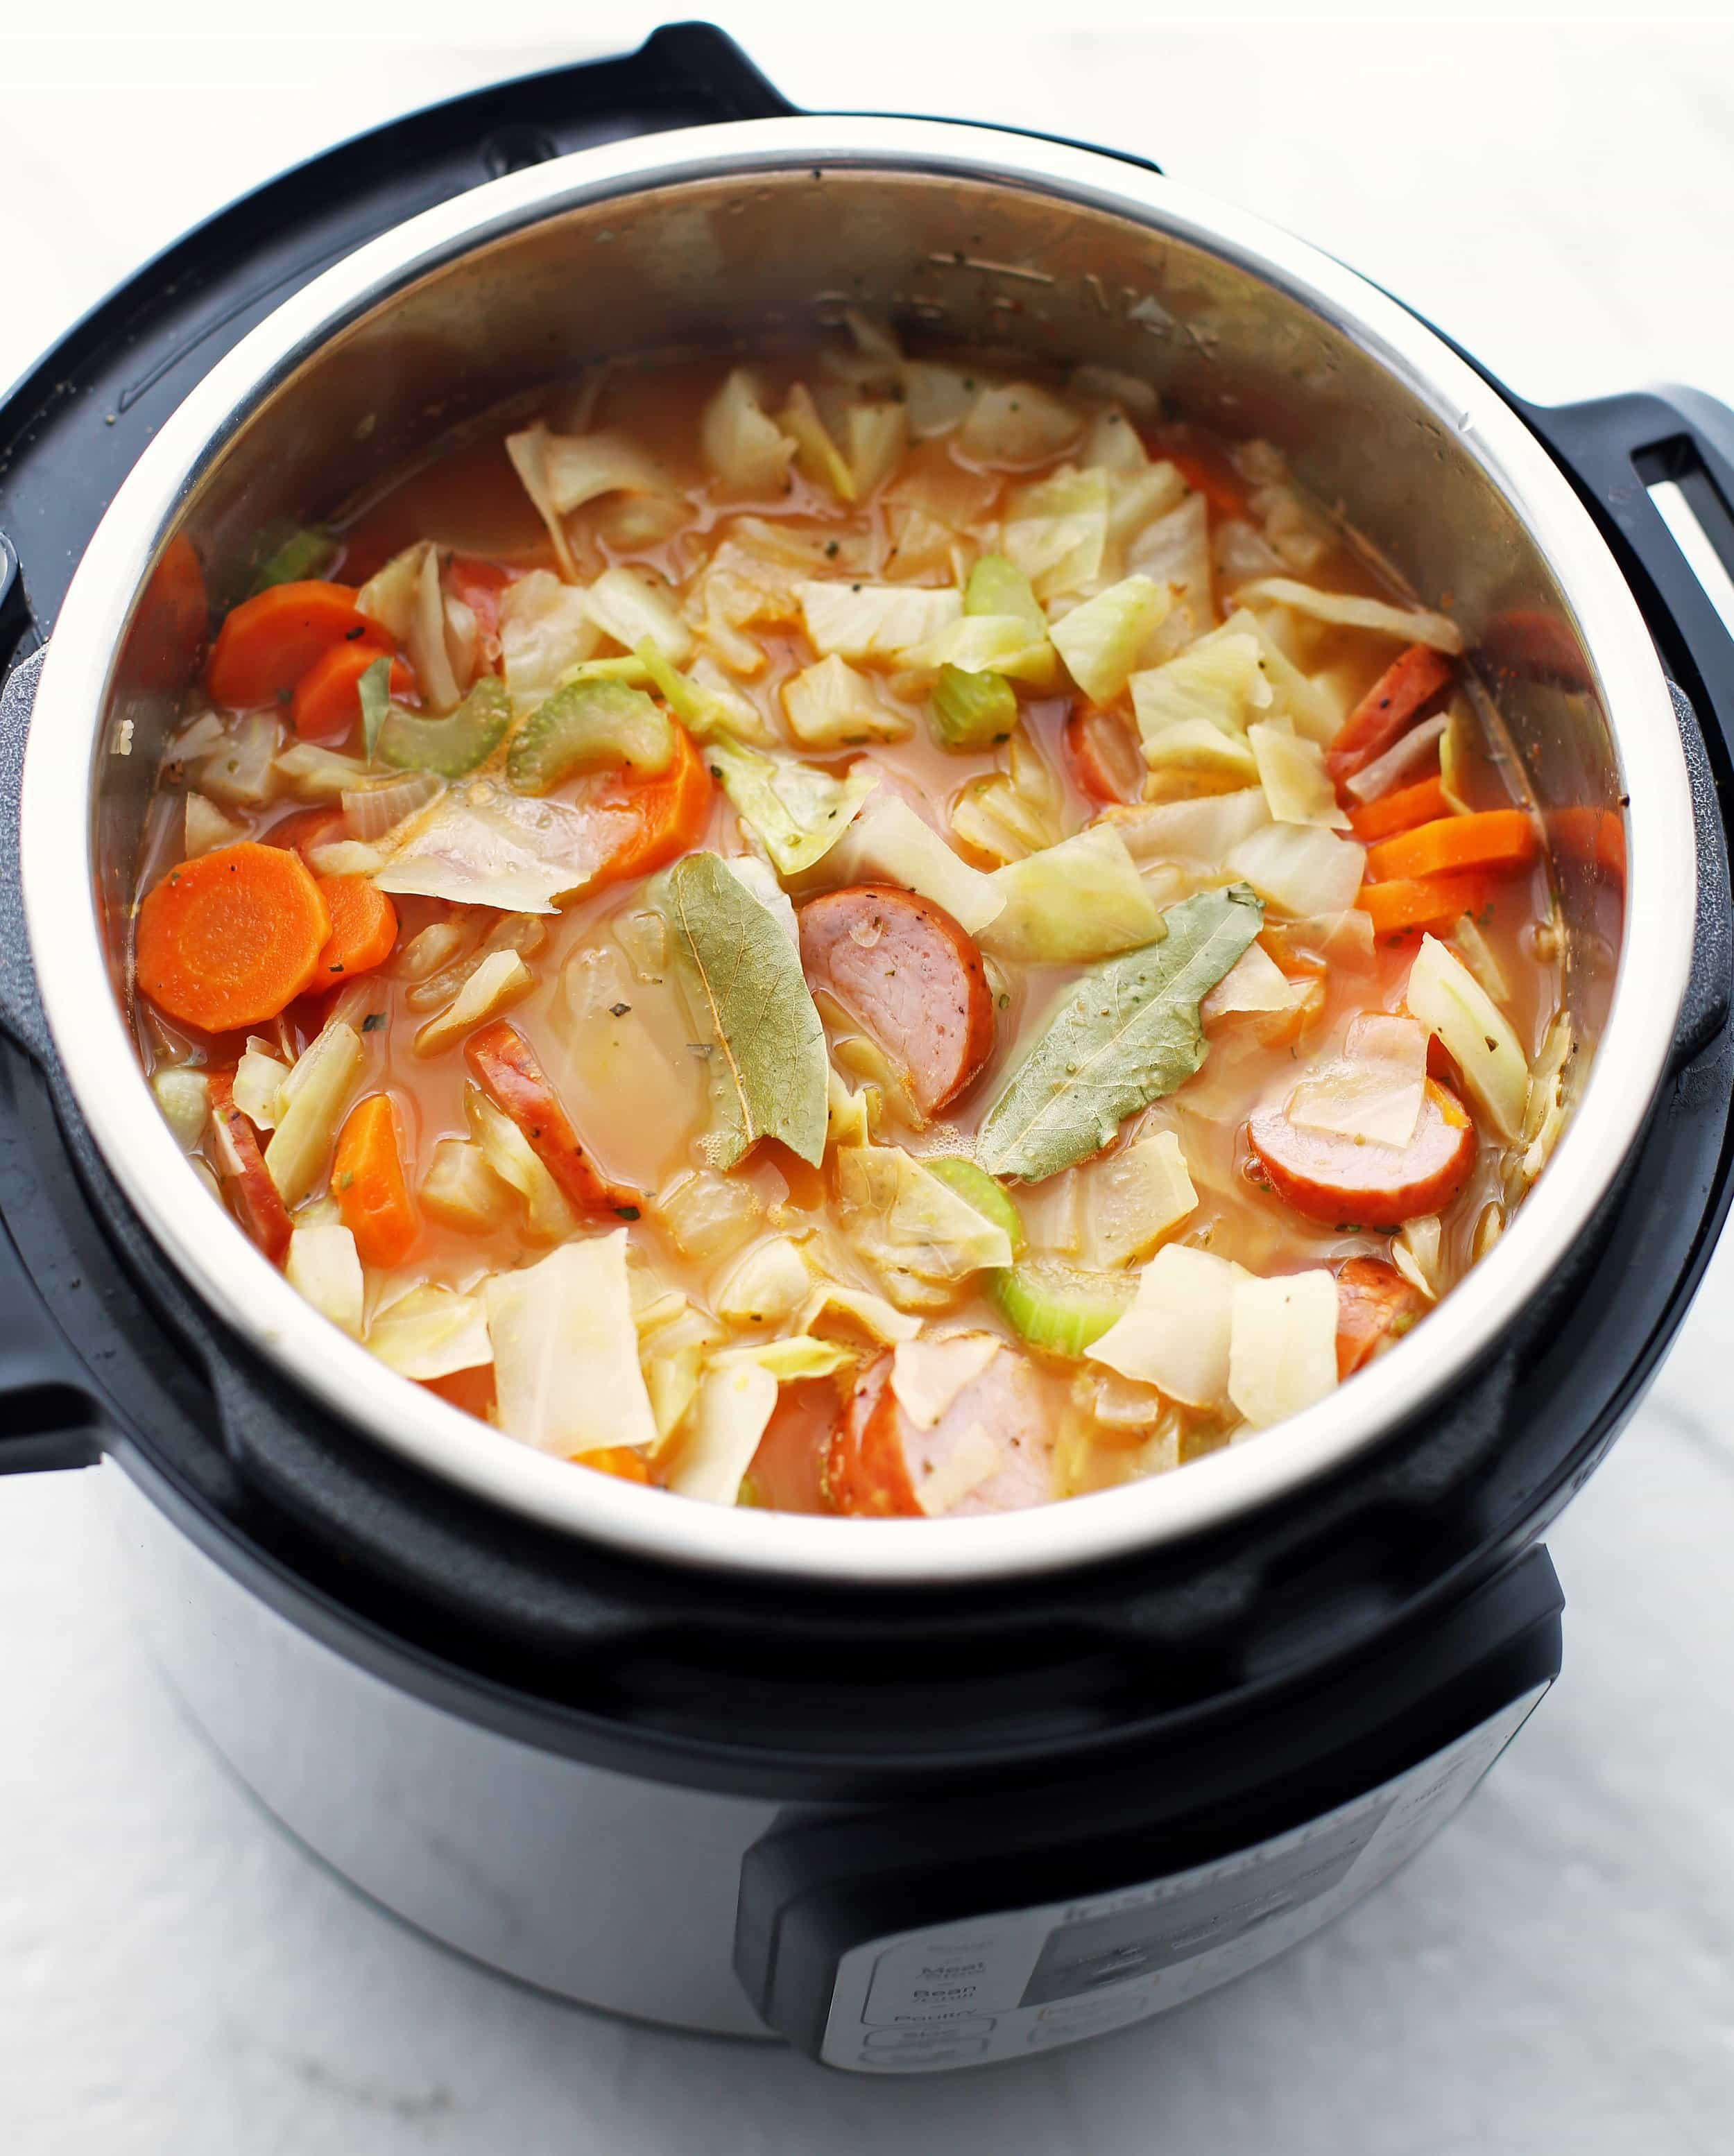 Prepared ingredients for fennel, cabbage, and sausage soup placed in the Instant Pot, which includes carrots, celery, onions.